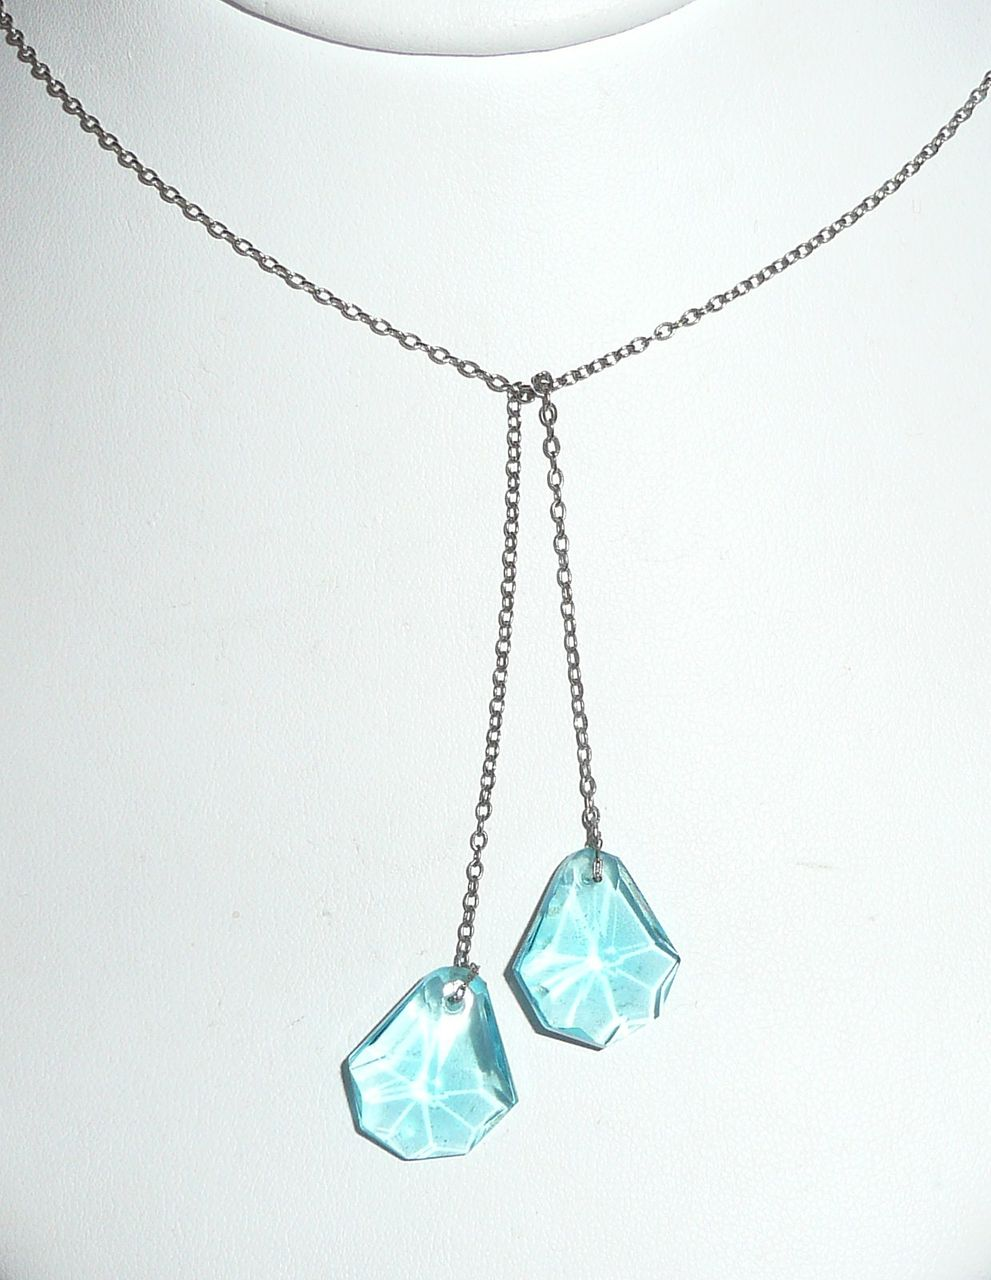 Aqua Blue Glass Lavaliere Pendants Necklace